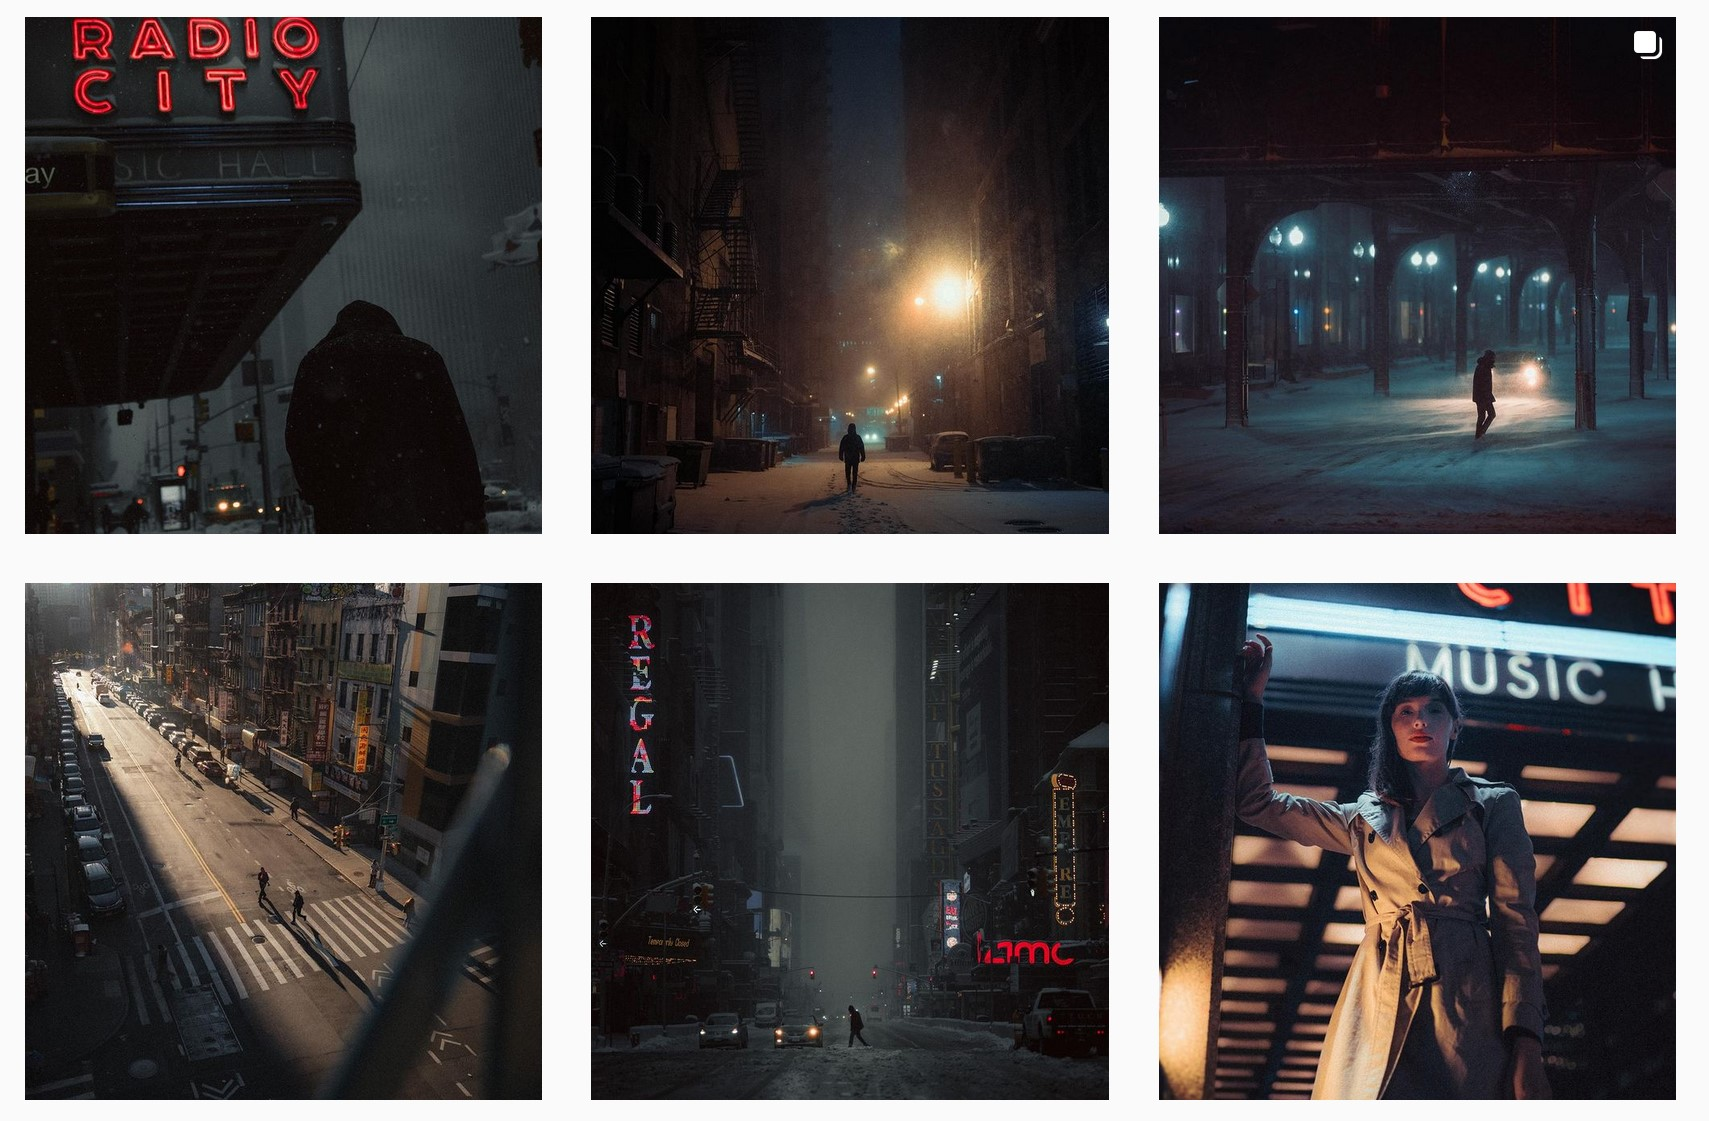 Photographer captures the neo-noir vibes of New York City